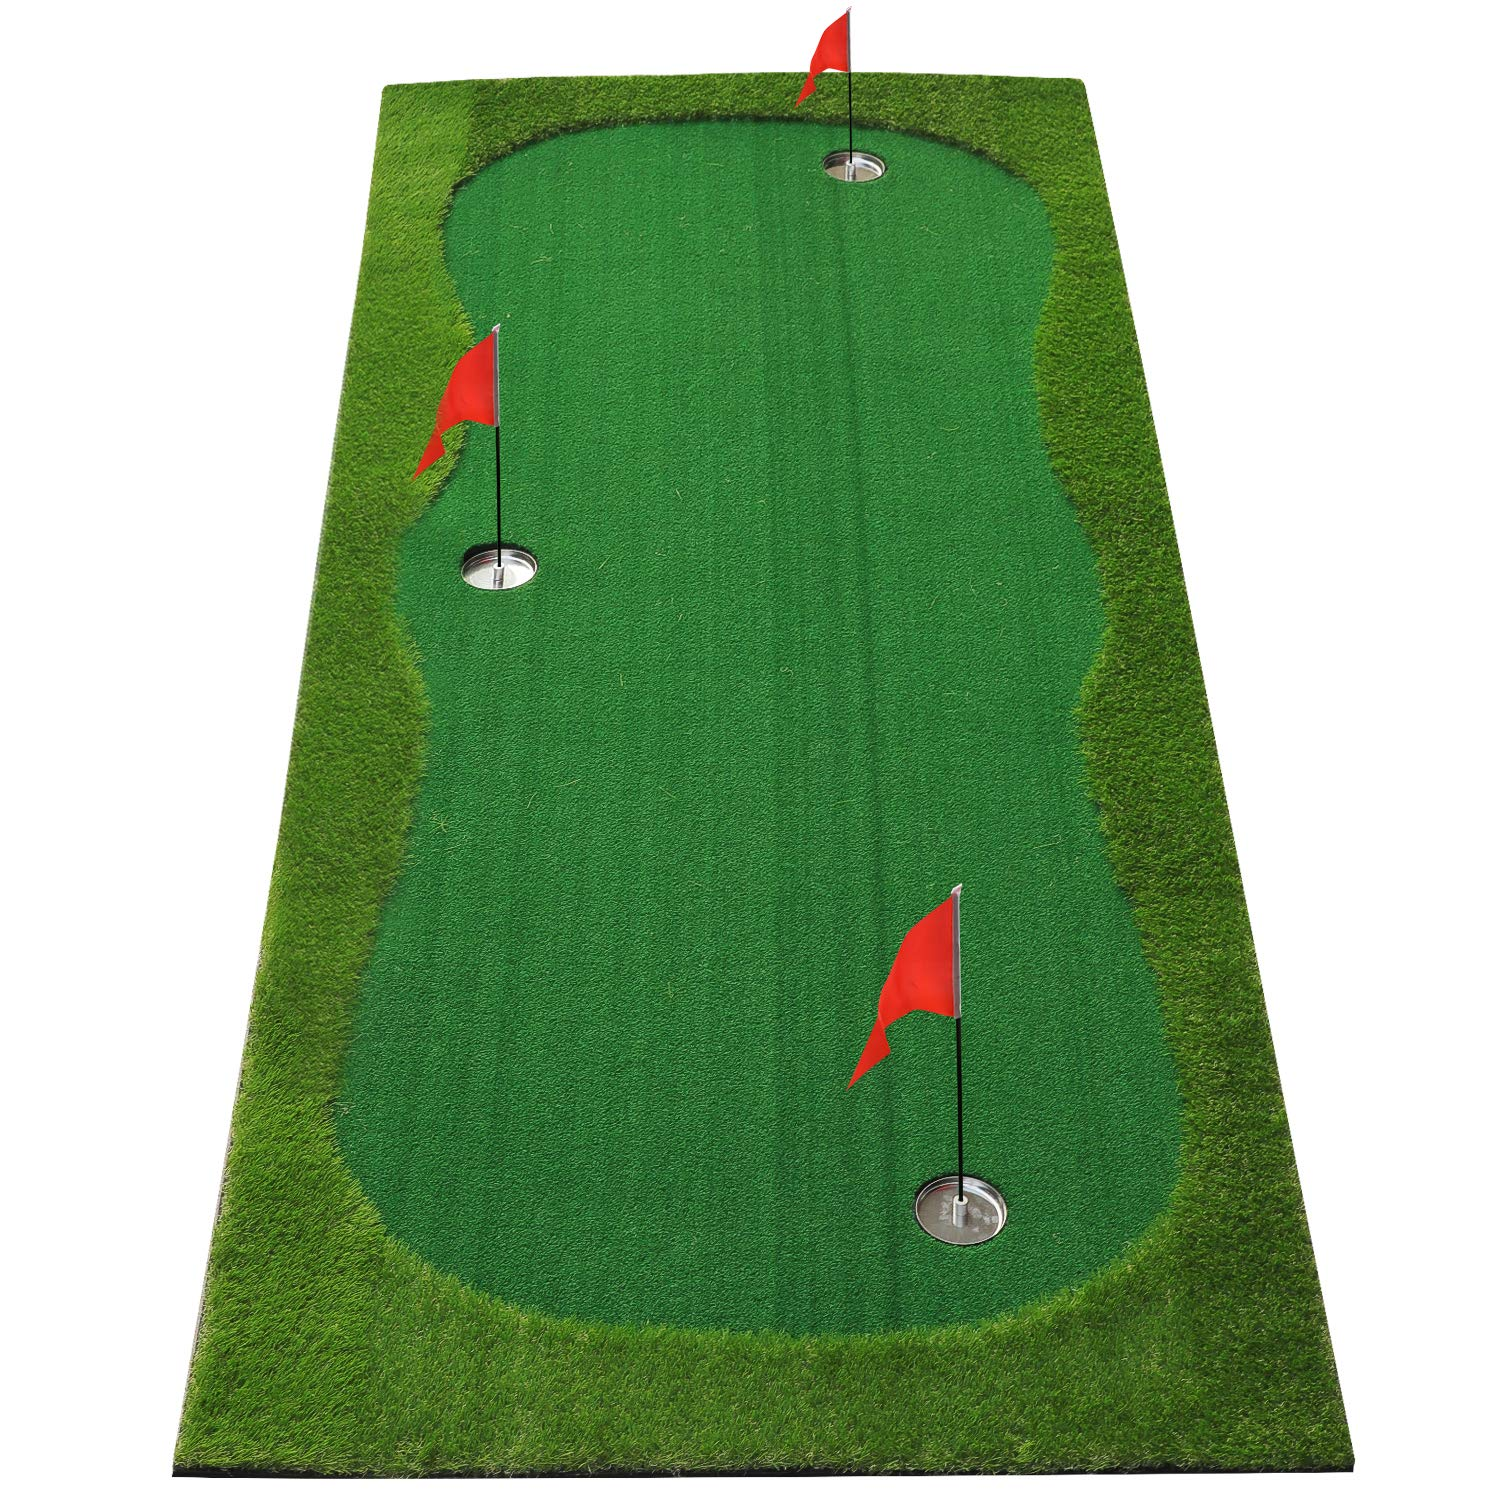 BOBURN Golf Putting Green/Mat-Golf Training Mat- Professional Golf Practice Mat- Green Long Challenging Putter for Indoor/Outdoor (Green, 4x10ft) by BOBURN